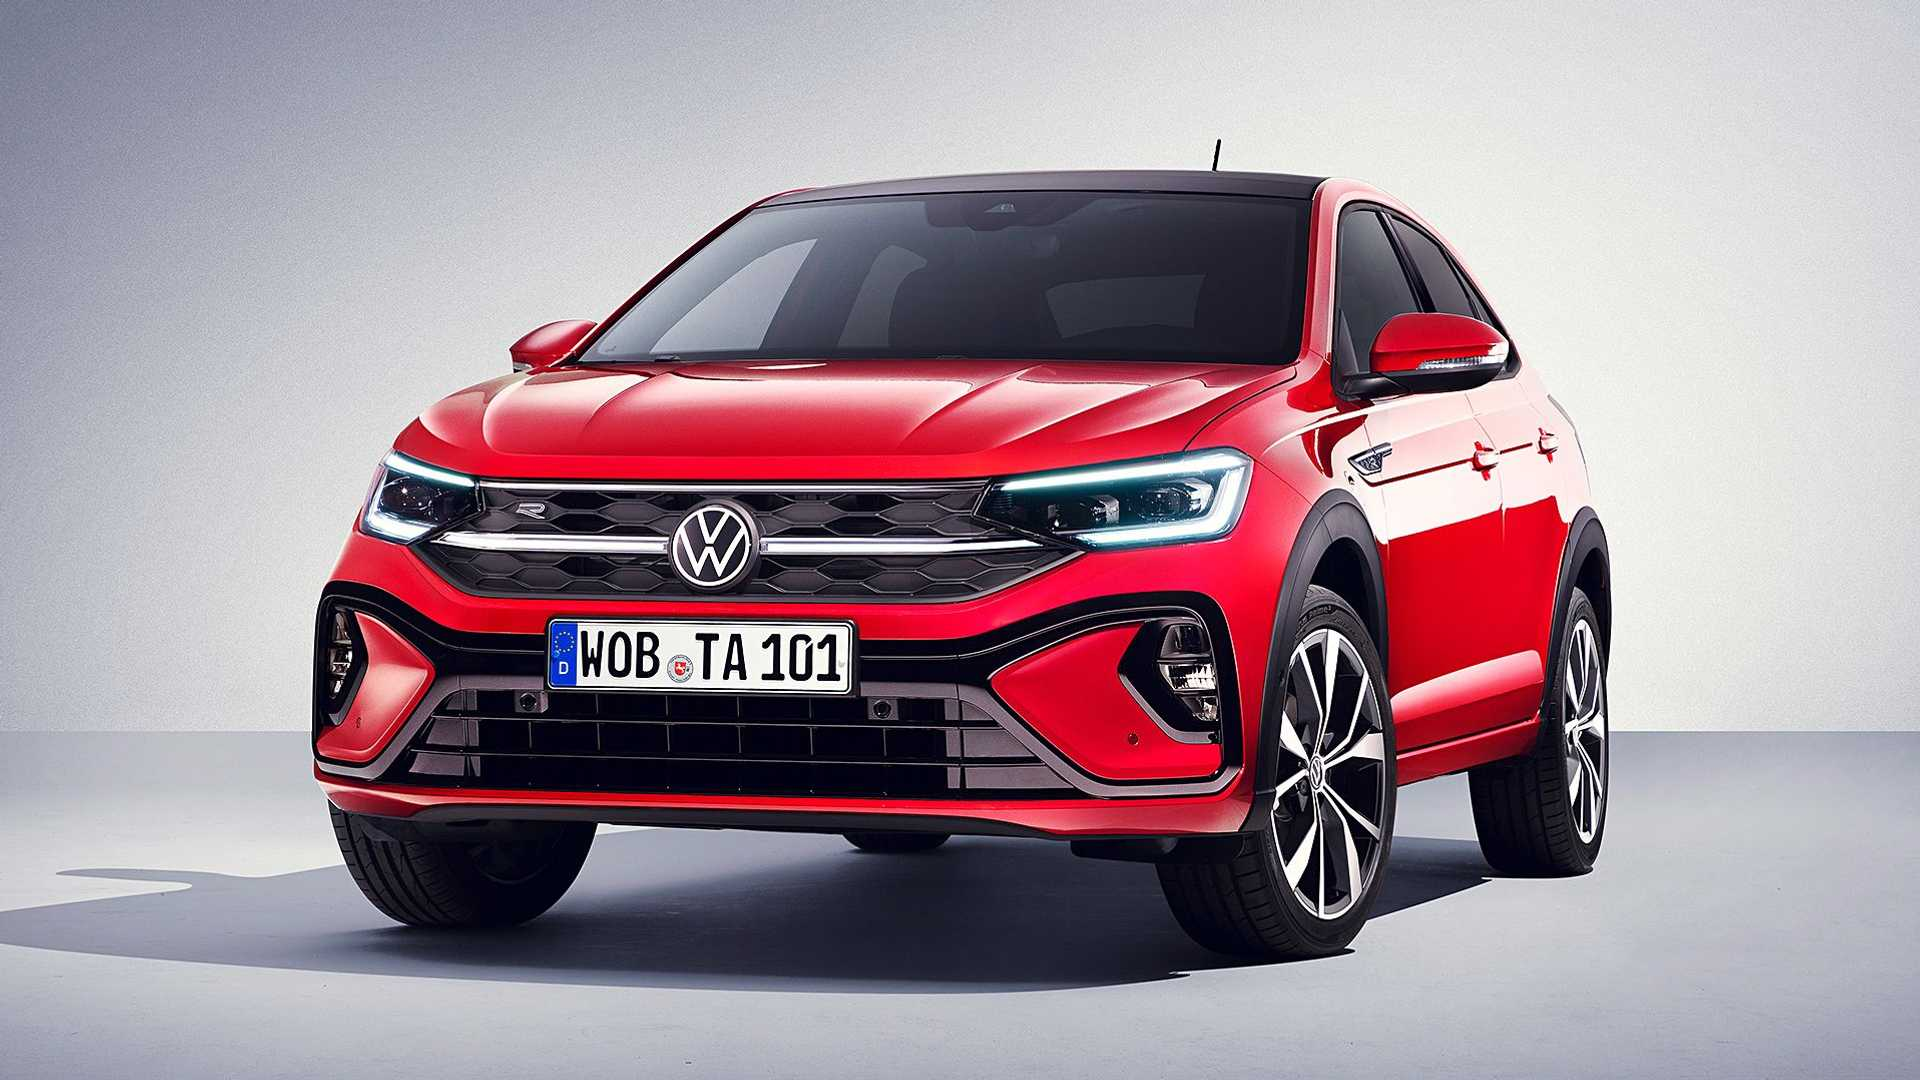 Volkswagen has introduced another all-new car, a coupe-like crossover utility vehicle named the Taigo. It will be assembled in Spain and be available in most countries across Europe, as well as Turkey and Africa.